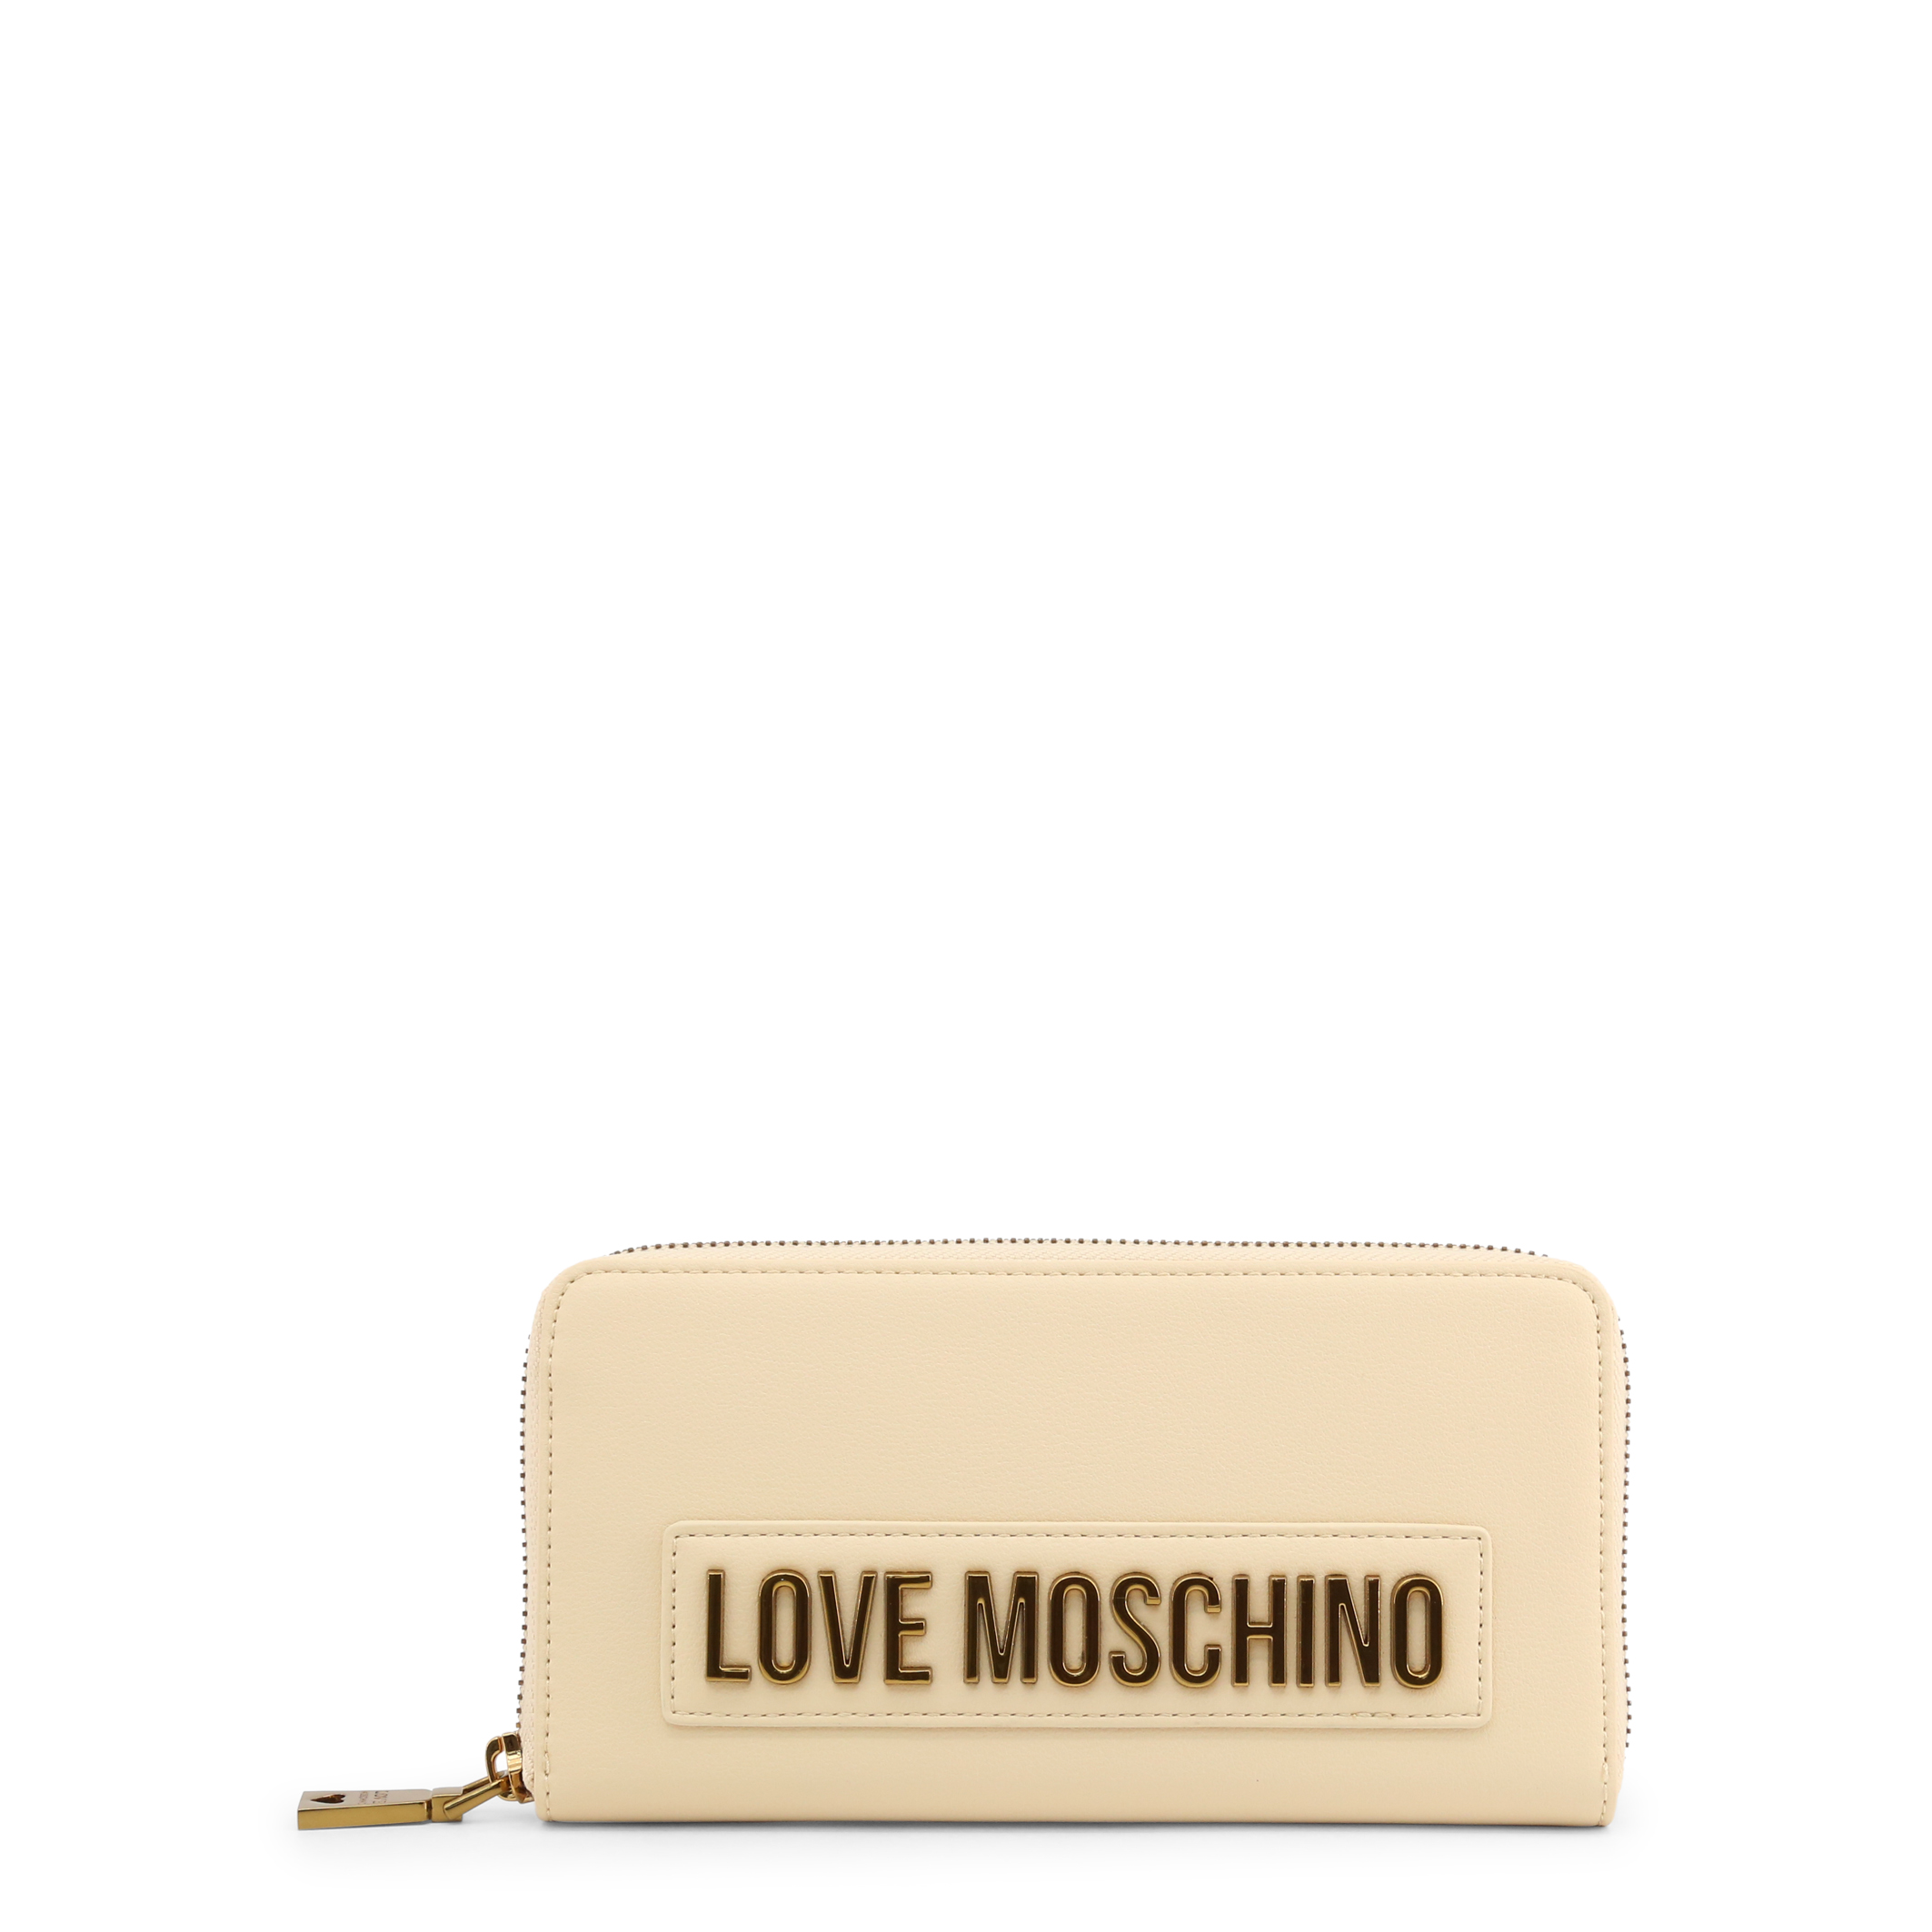 Portefeuilles / Porte-monnaie  Love moschino JC5622PP1BLK_0107 brown